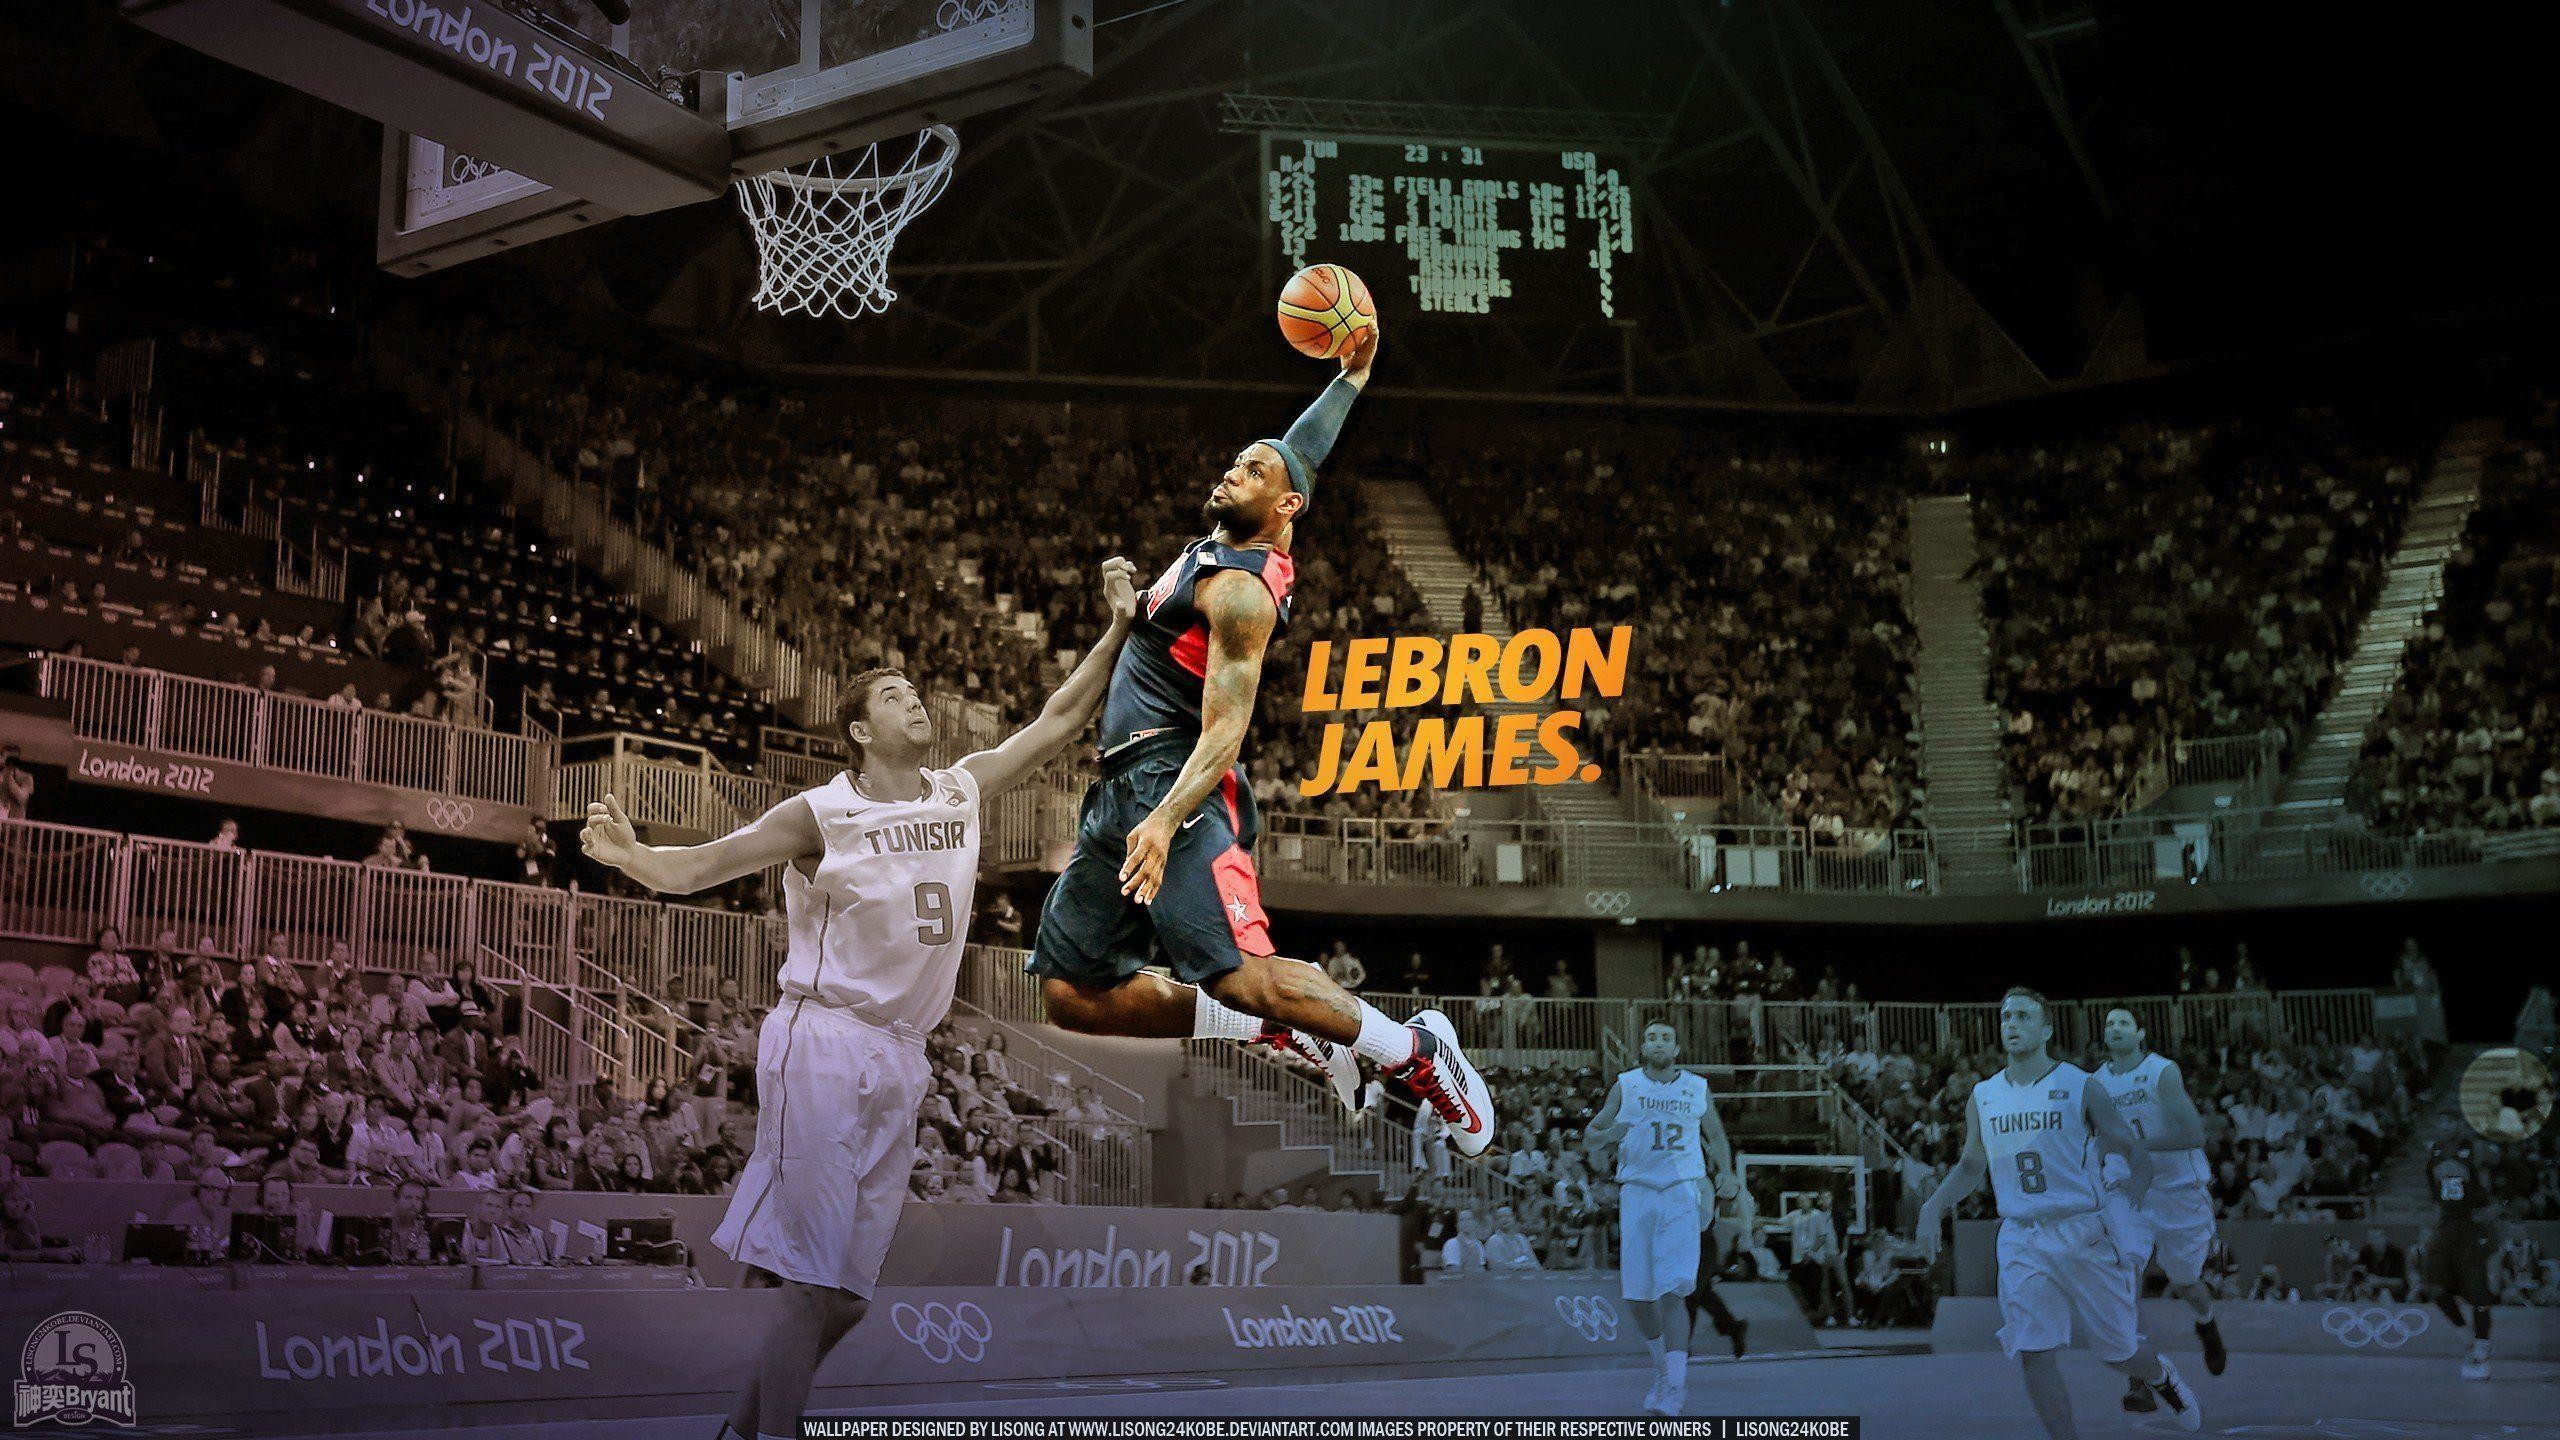 lebron james wallpaper dunk (the best 68+ images in 2018)